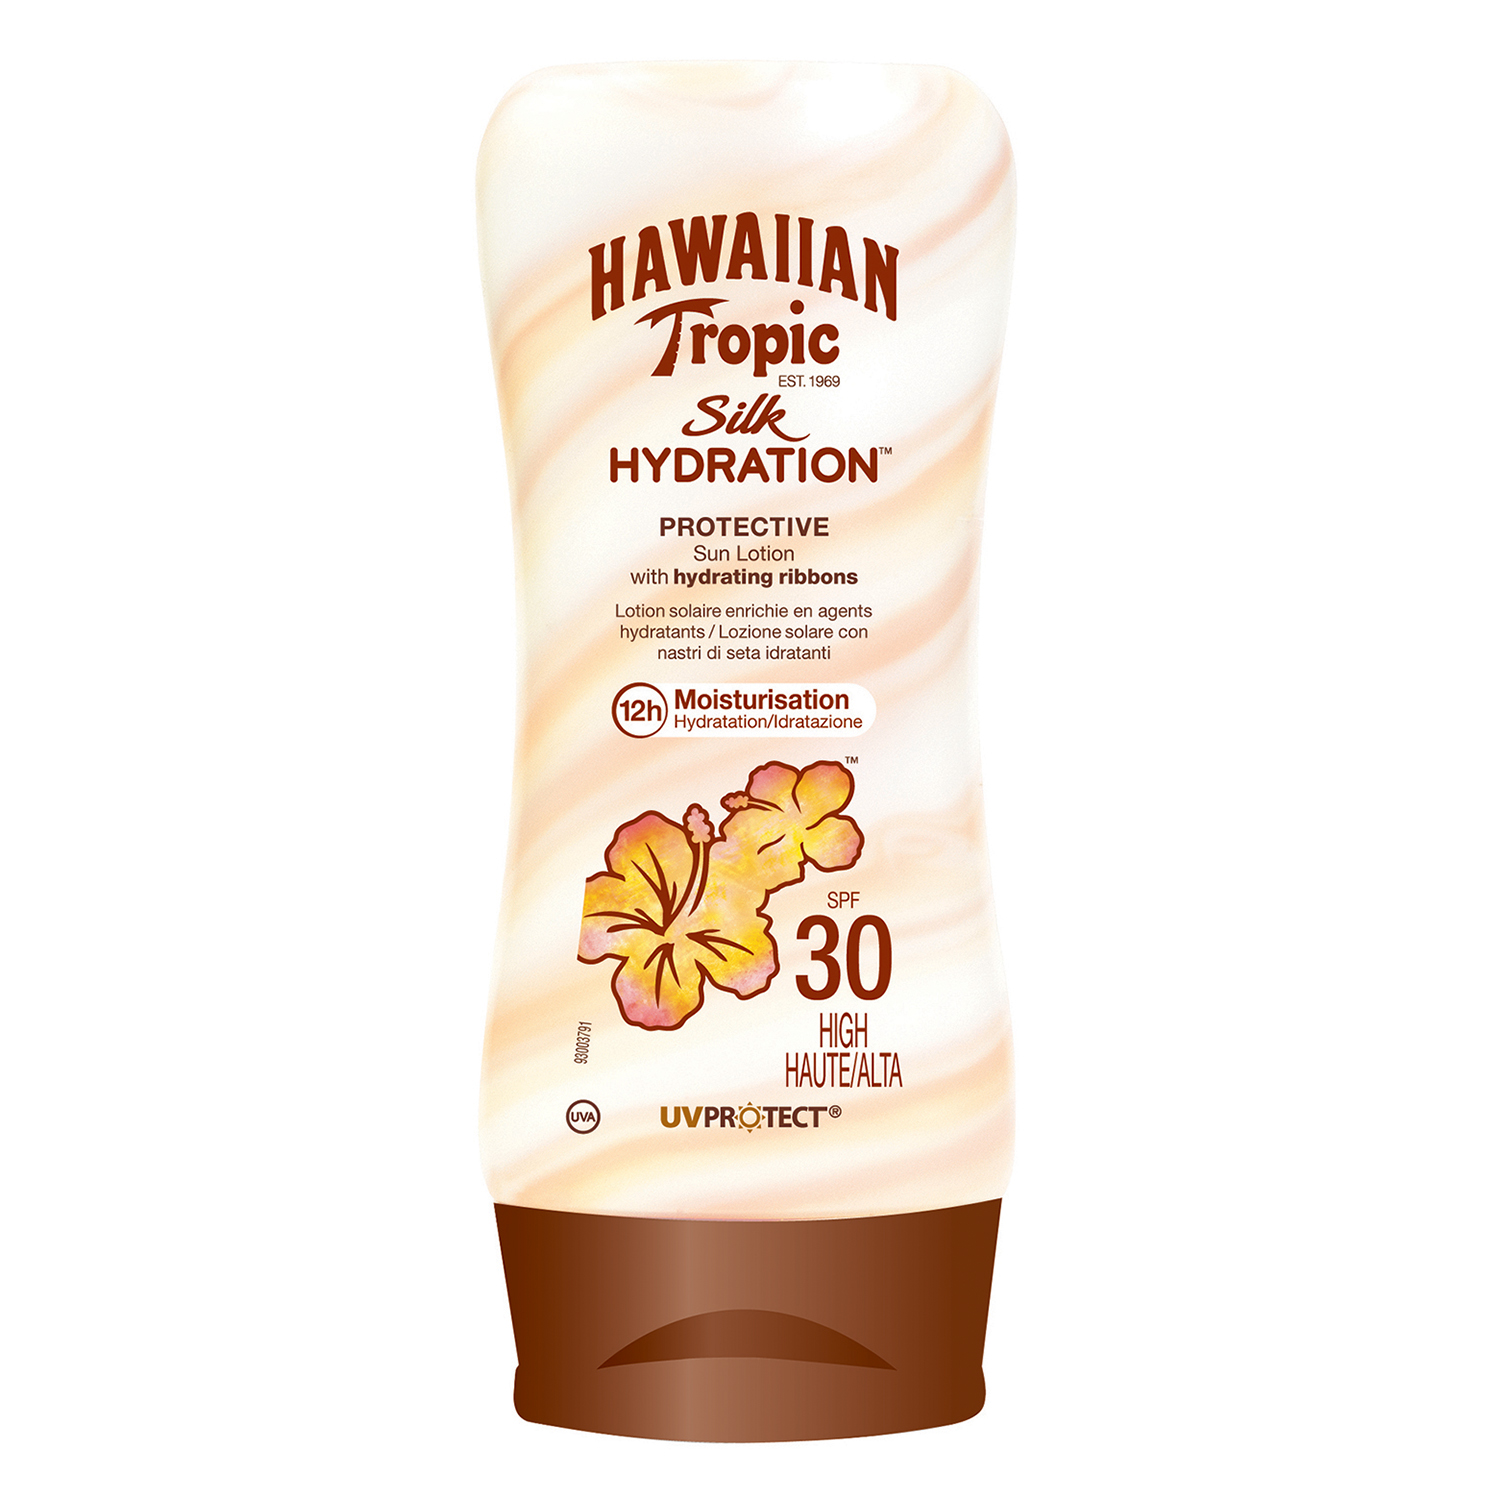 Loción solar FP 30 Silk Hydration Hawaiian Tropic 180 ml.